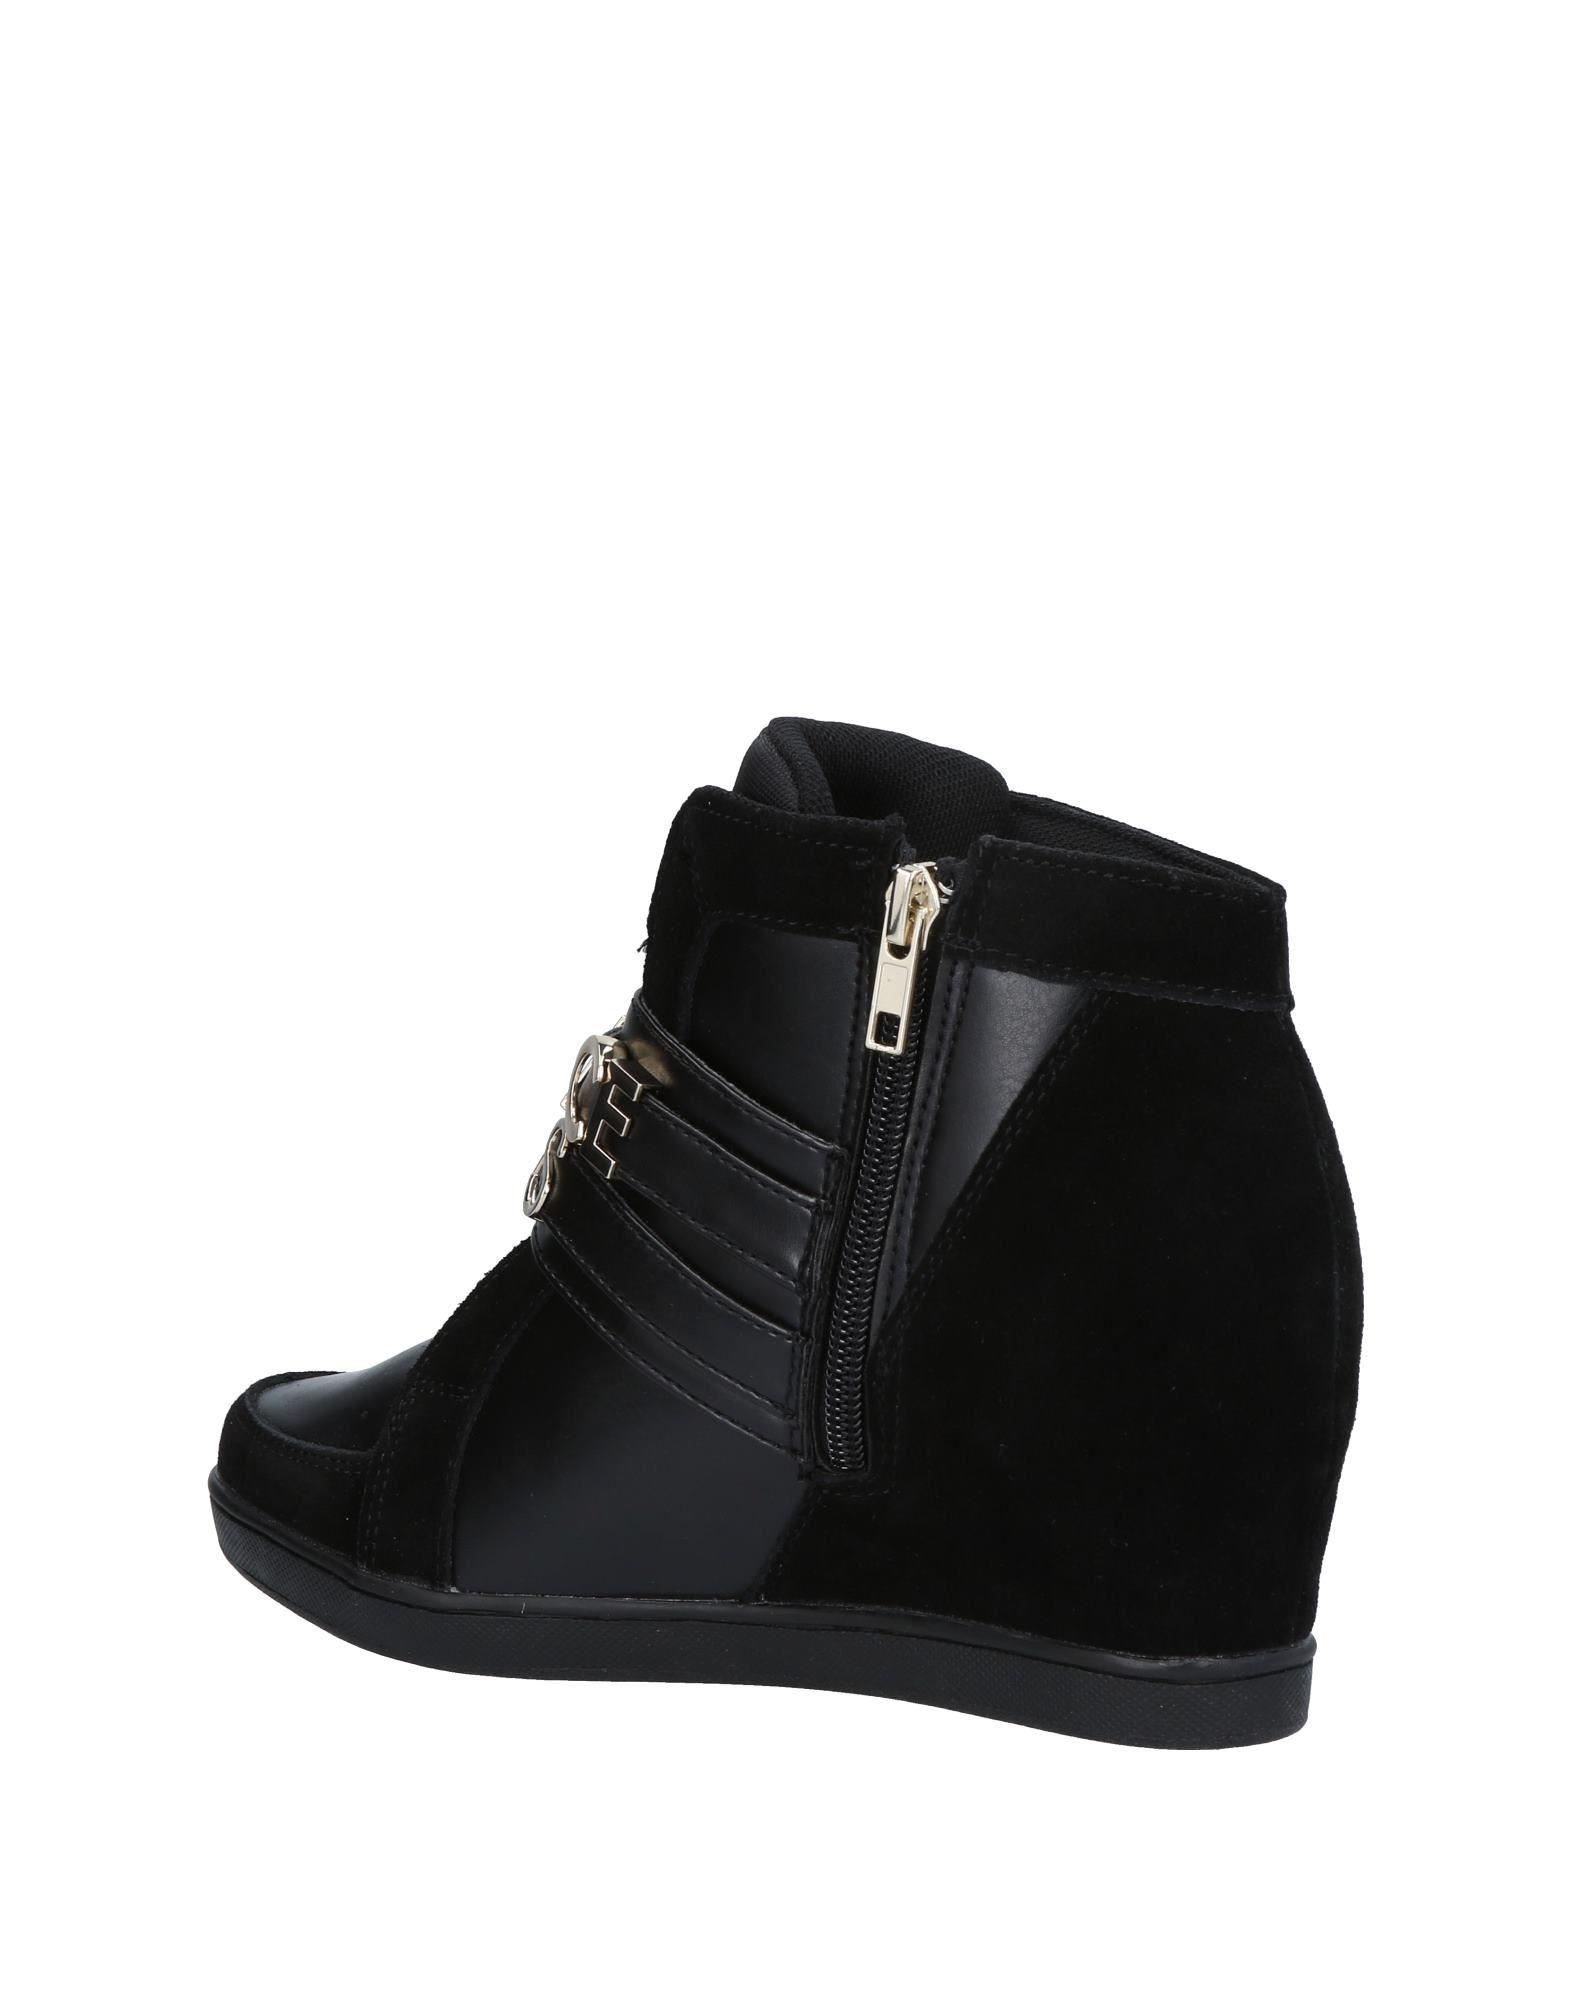 Versace Jeans Couture Suede High-tops & Sneakers in Black